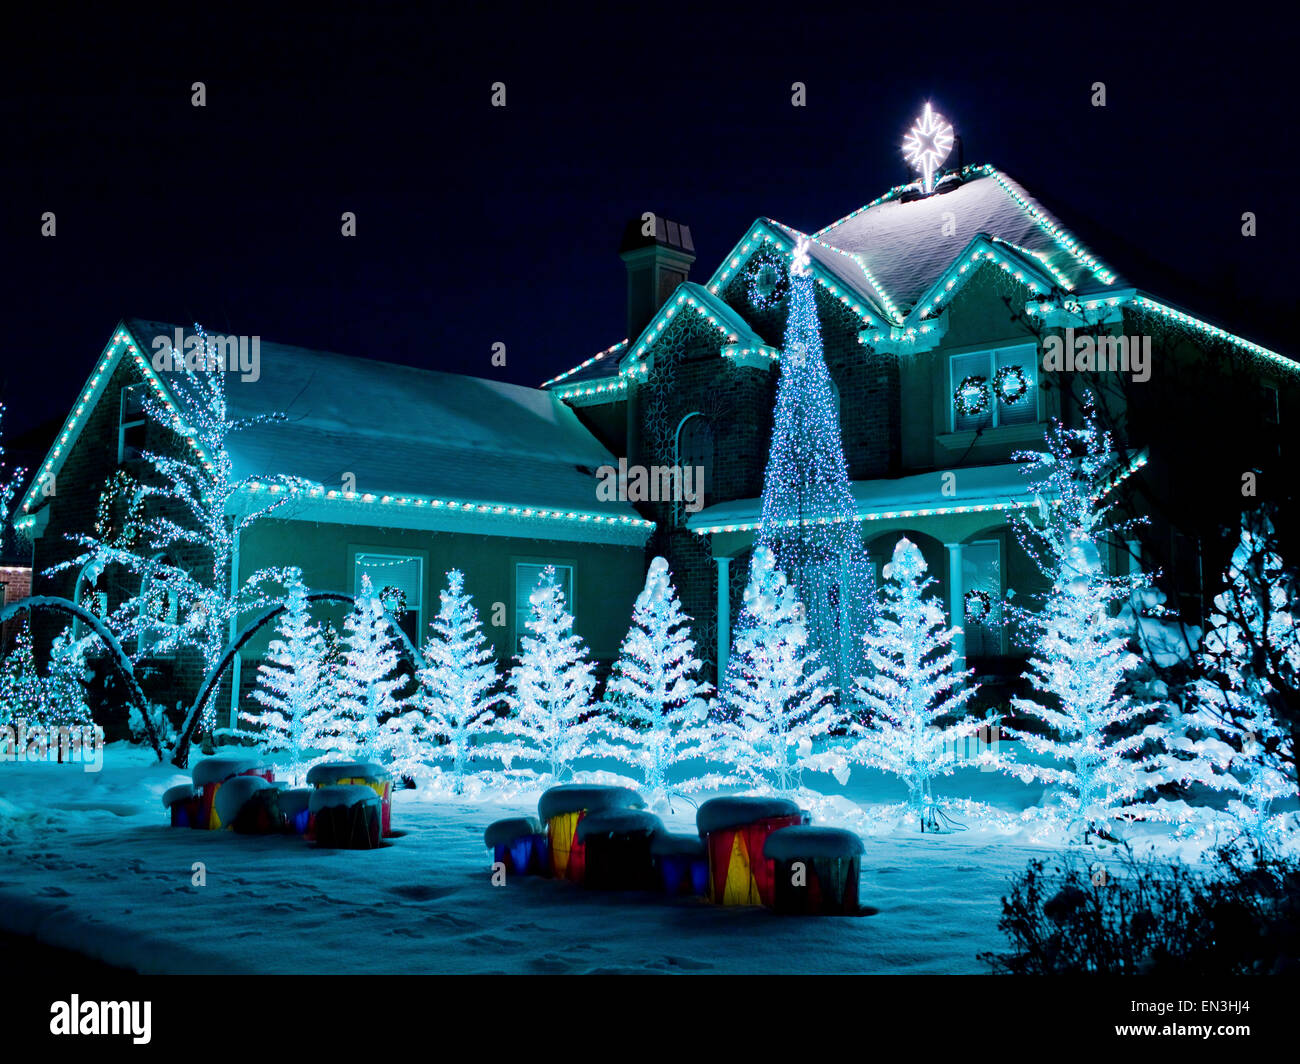 usautahamerican forkhouse decorated with christmas lights and ornaments at night - Christmas Lights In Utah